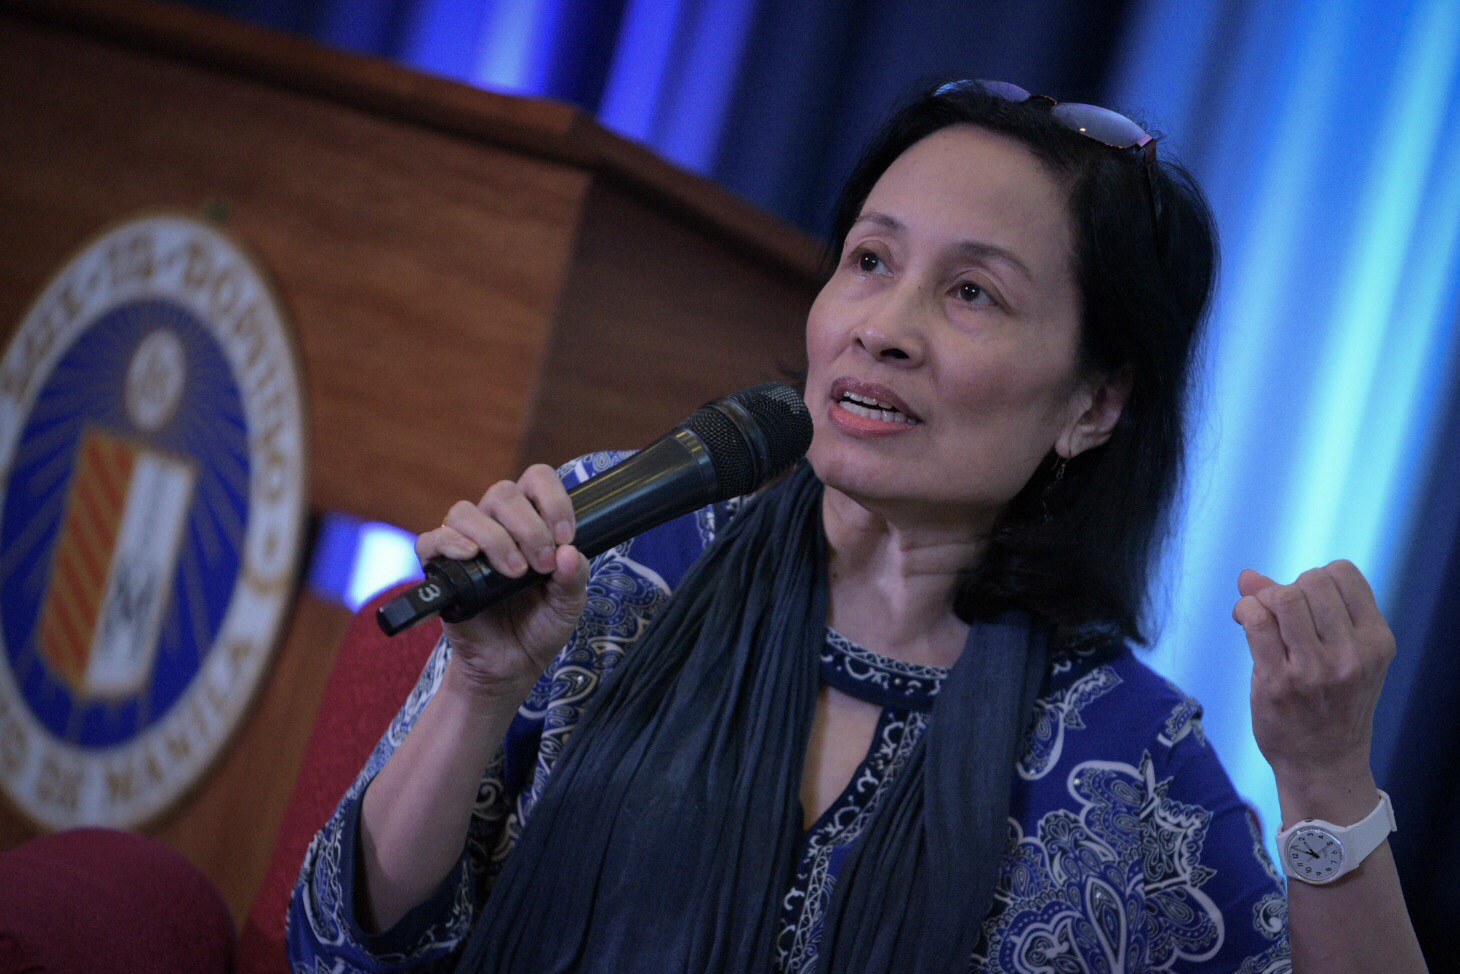 RESPONSIBLE BLOGGERS. Jane Uymatiao of Blogwatch during the Democracy and Disinformation forum at Ateneo de Manila Makati campus on February 13, 2018. Photo by LeAnne Jazul/Rappler